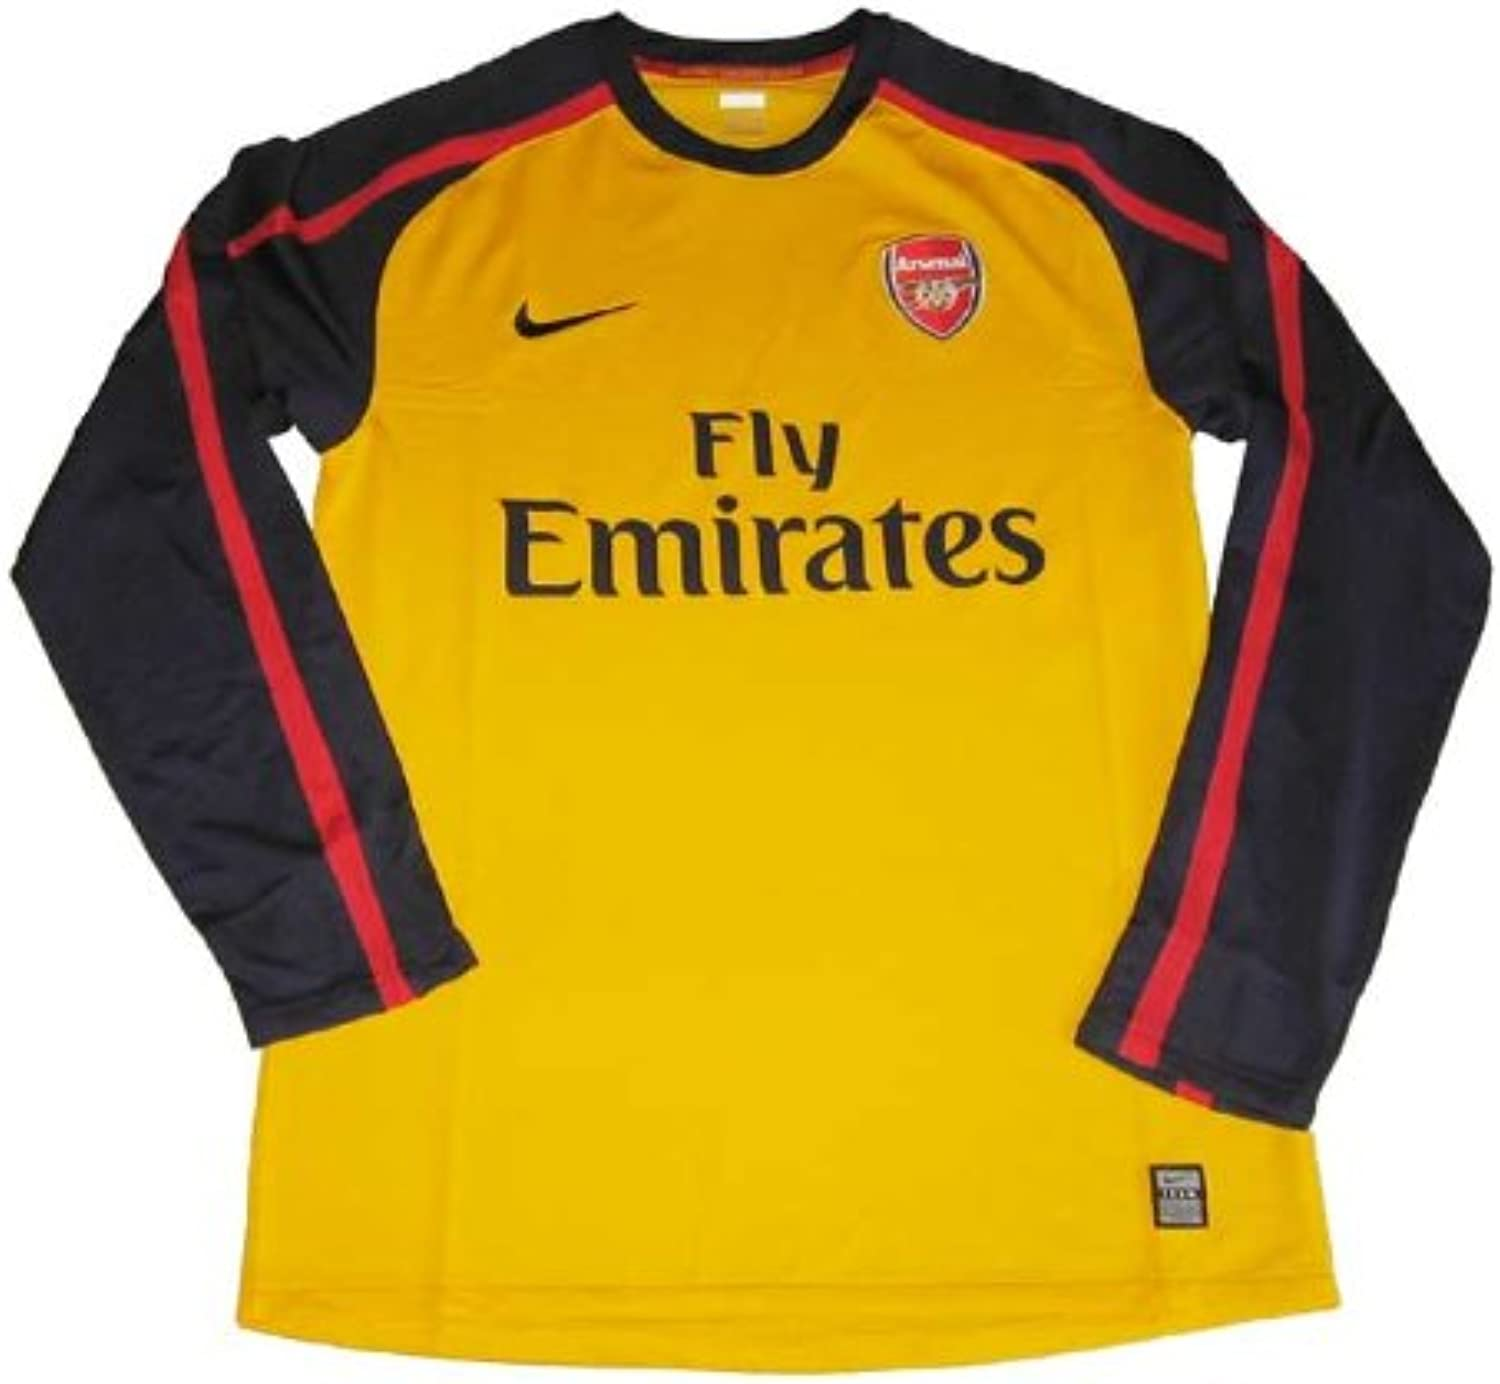 Arsenal London Trikot Away 2008 09 Nike Player Issue EPL EPL EPL Longsleeve Gr.XXL B00B31929A  Niedriger Preis c8e441